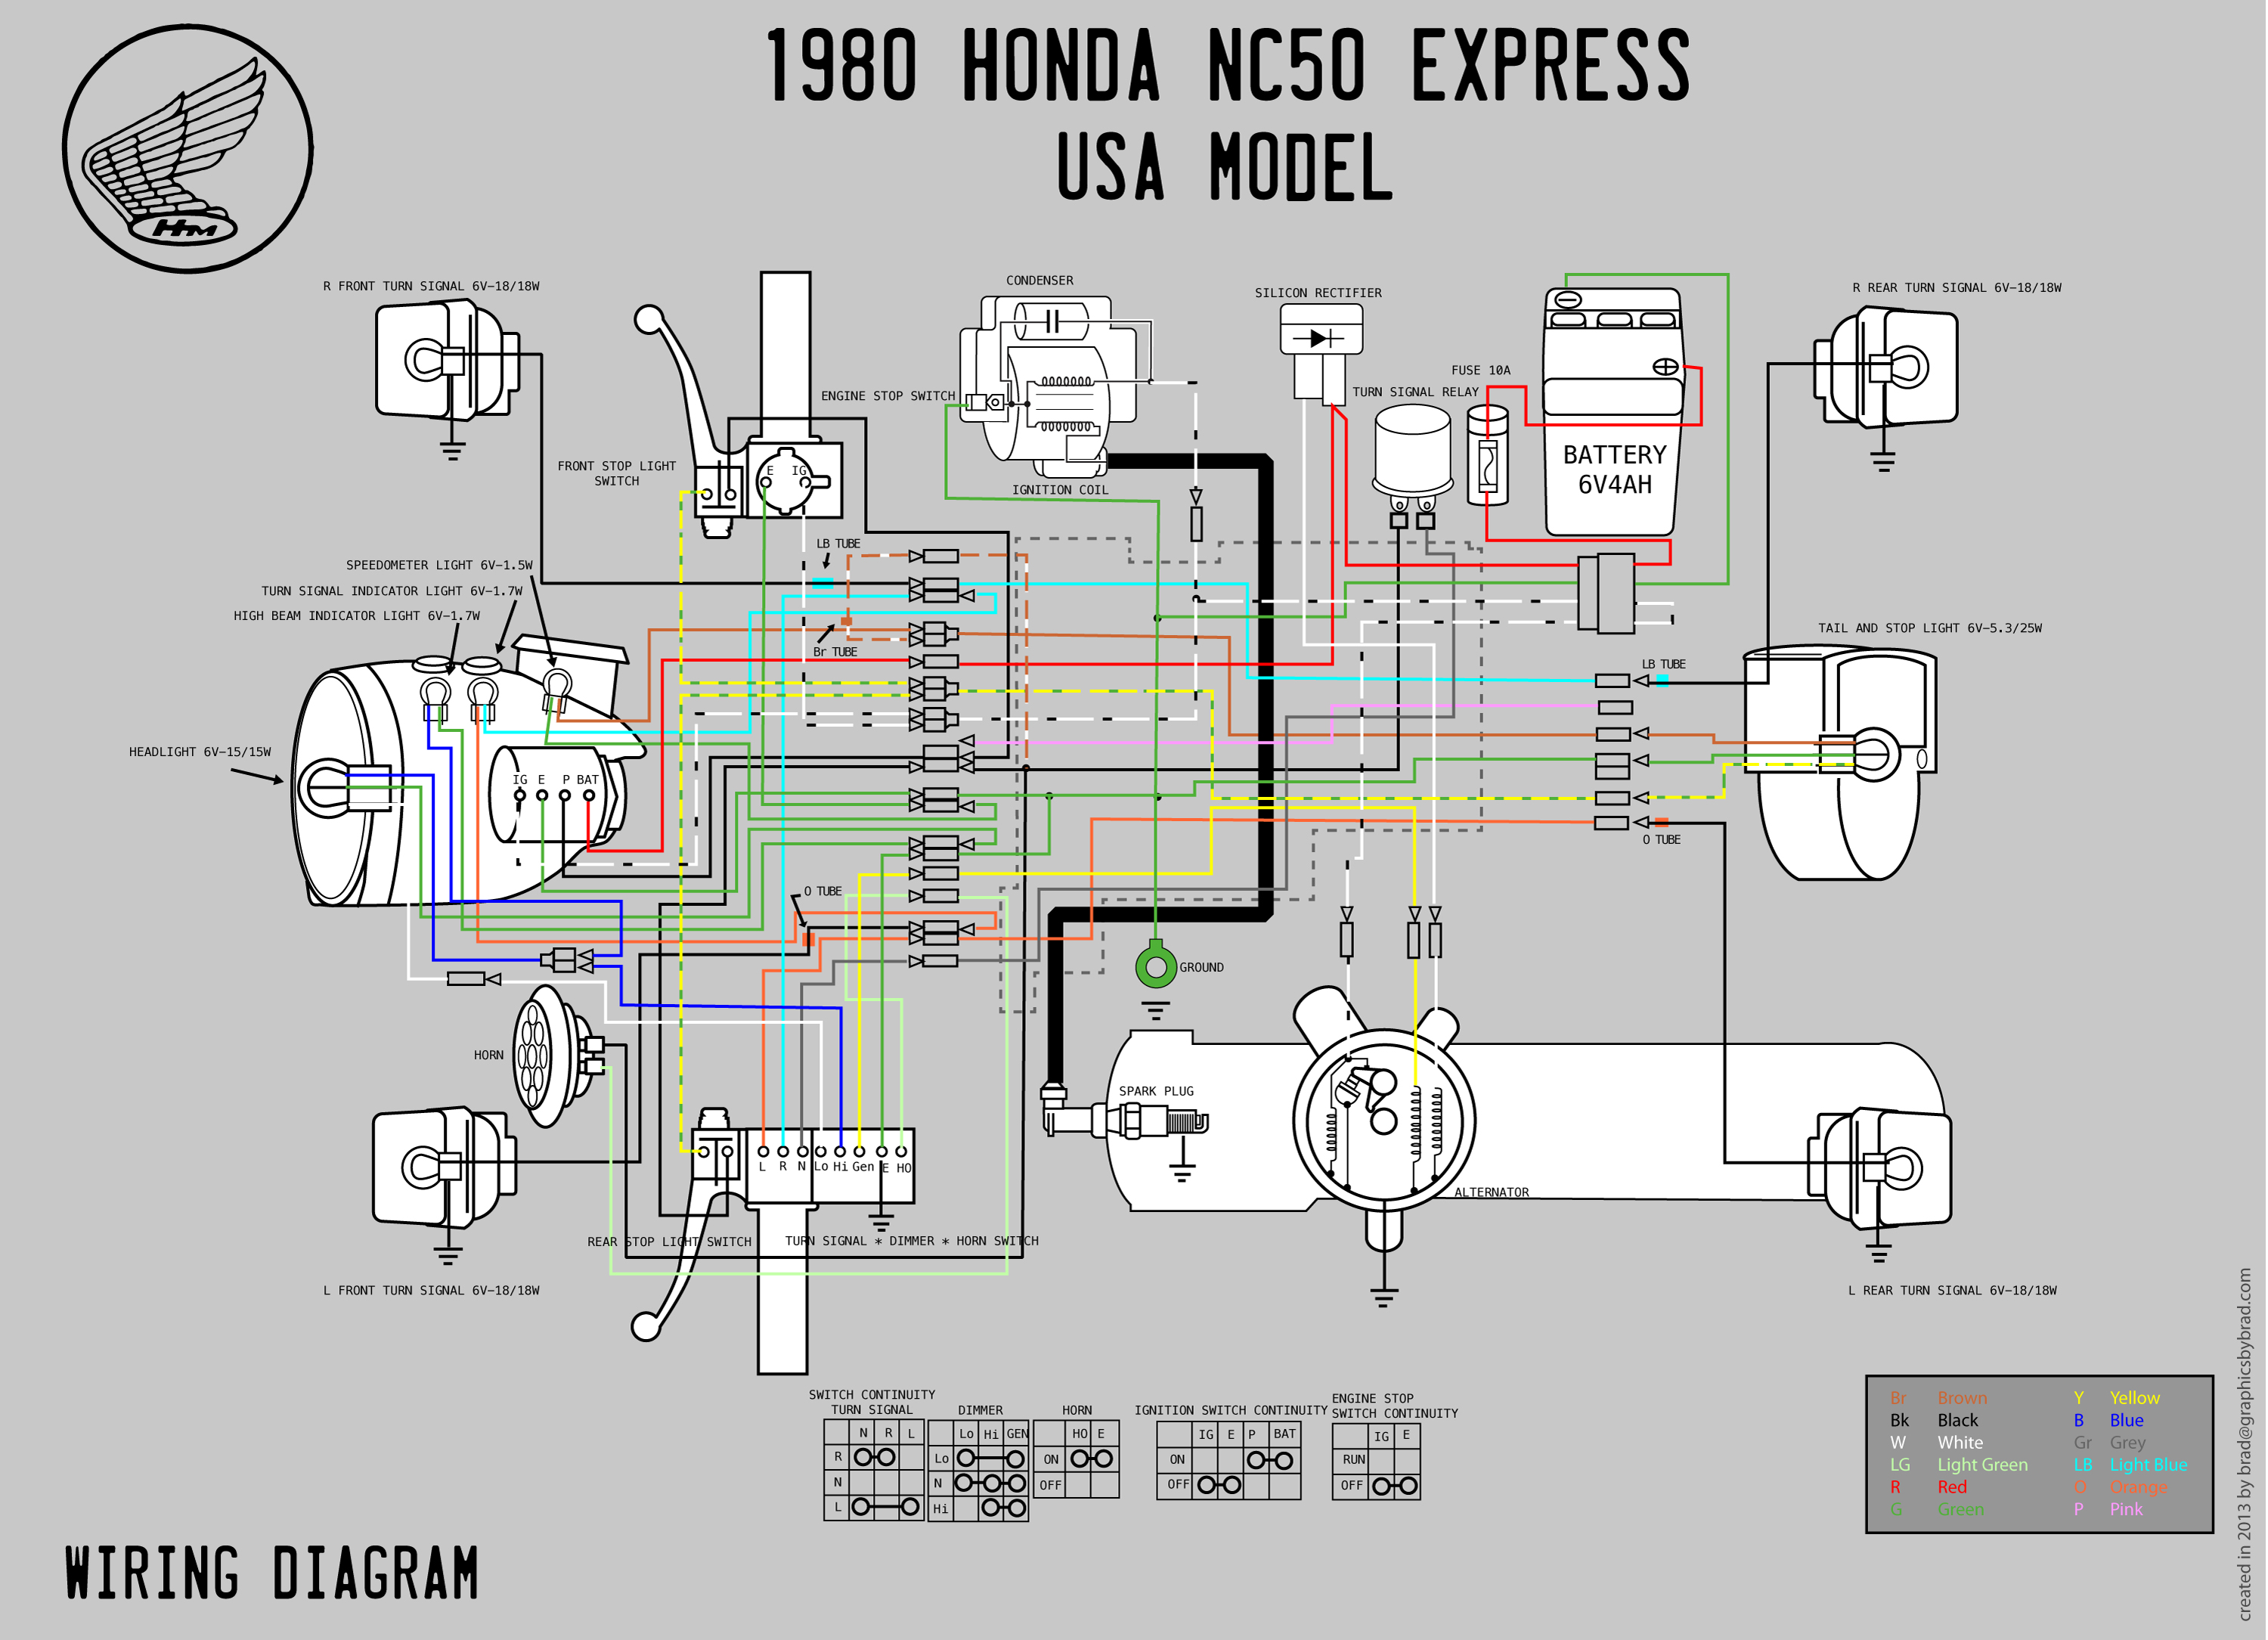 1980 honda nc50 wiring diagram moped wiki rh mopedarmy com 2012 Honda Civic Transmission Wire Diagram Honda Shadow Electrical Diagram